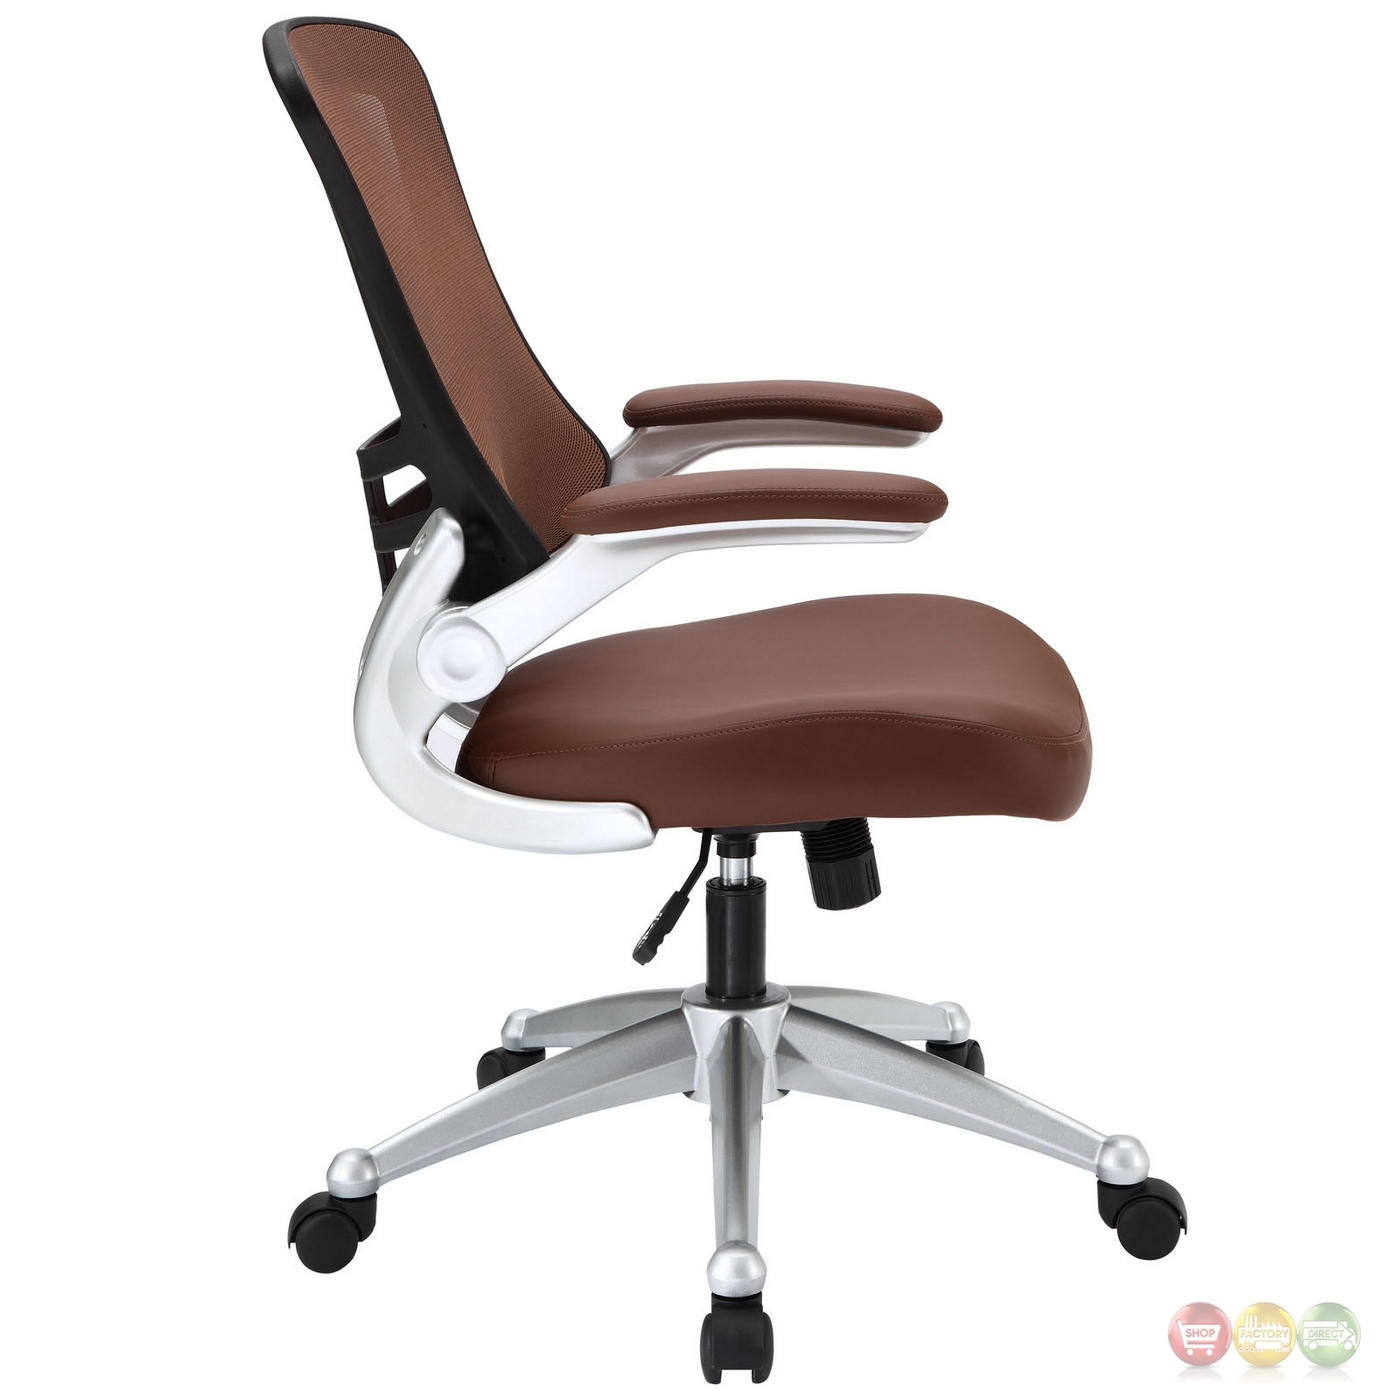 Modern Ergonomic Mesh Back Office Chair W Lumbar Support Tan